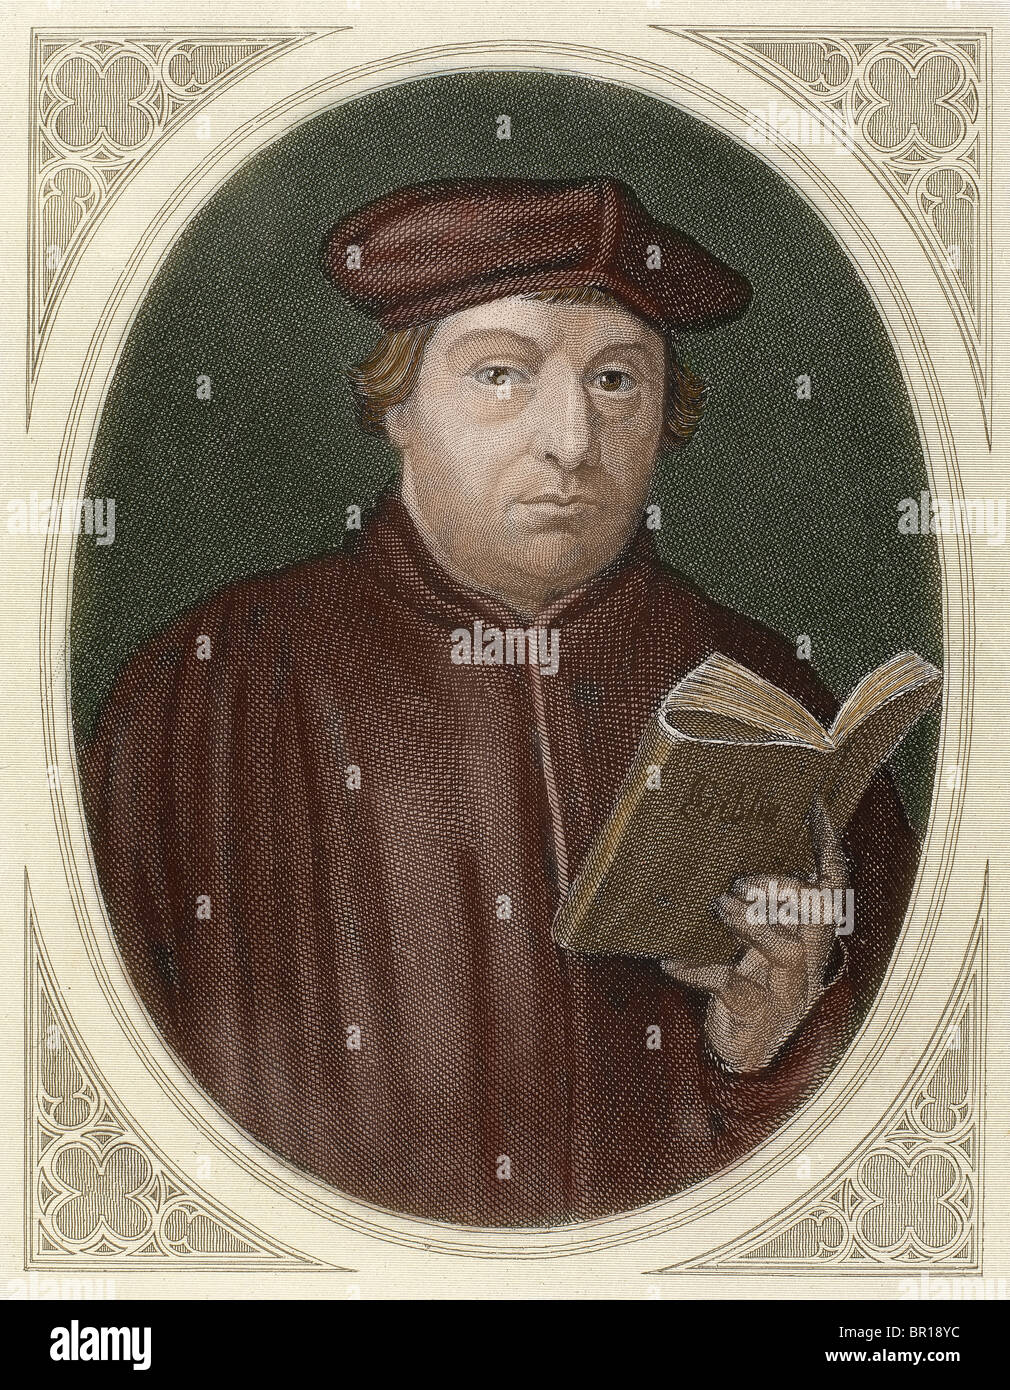 Martin Luther, (1483-1546). German reformer. Doctor of Theology and Augustinian priest. - Stock Image